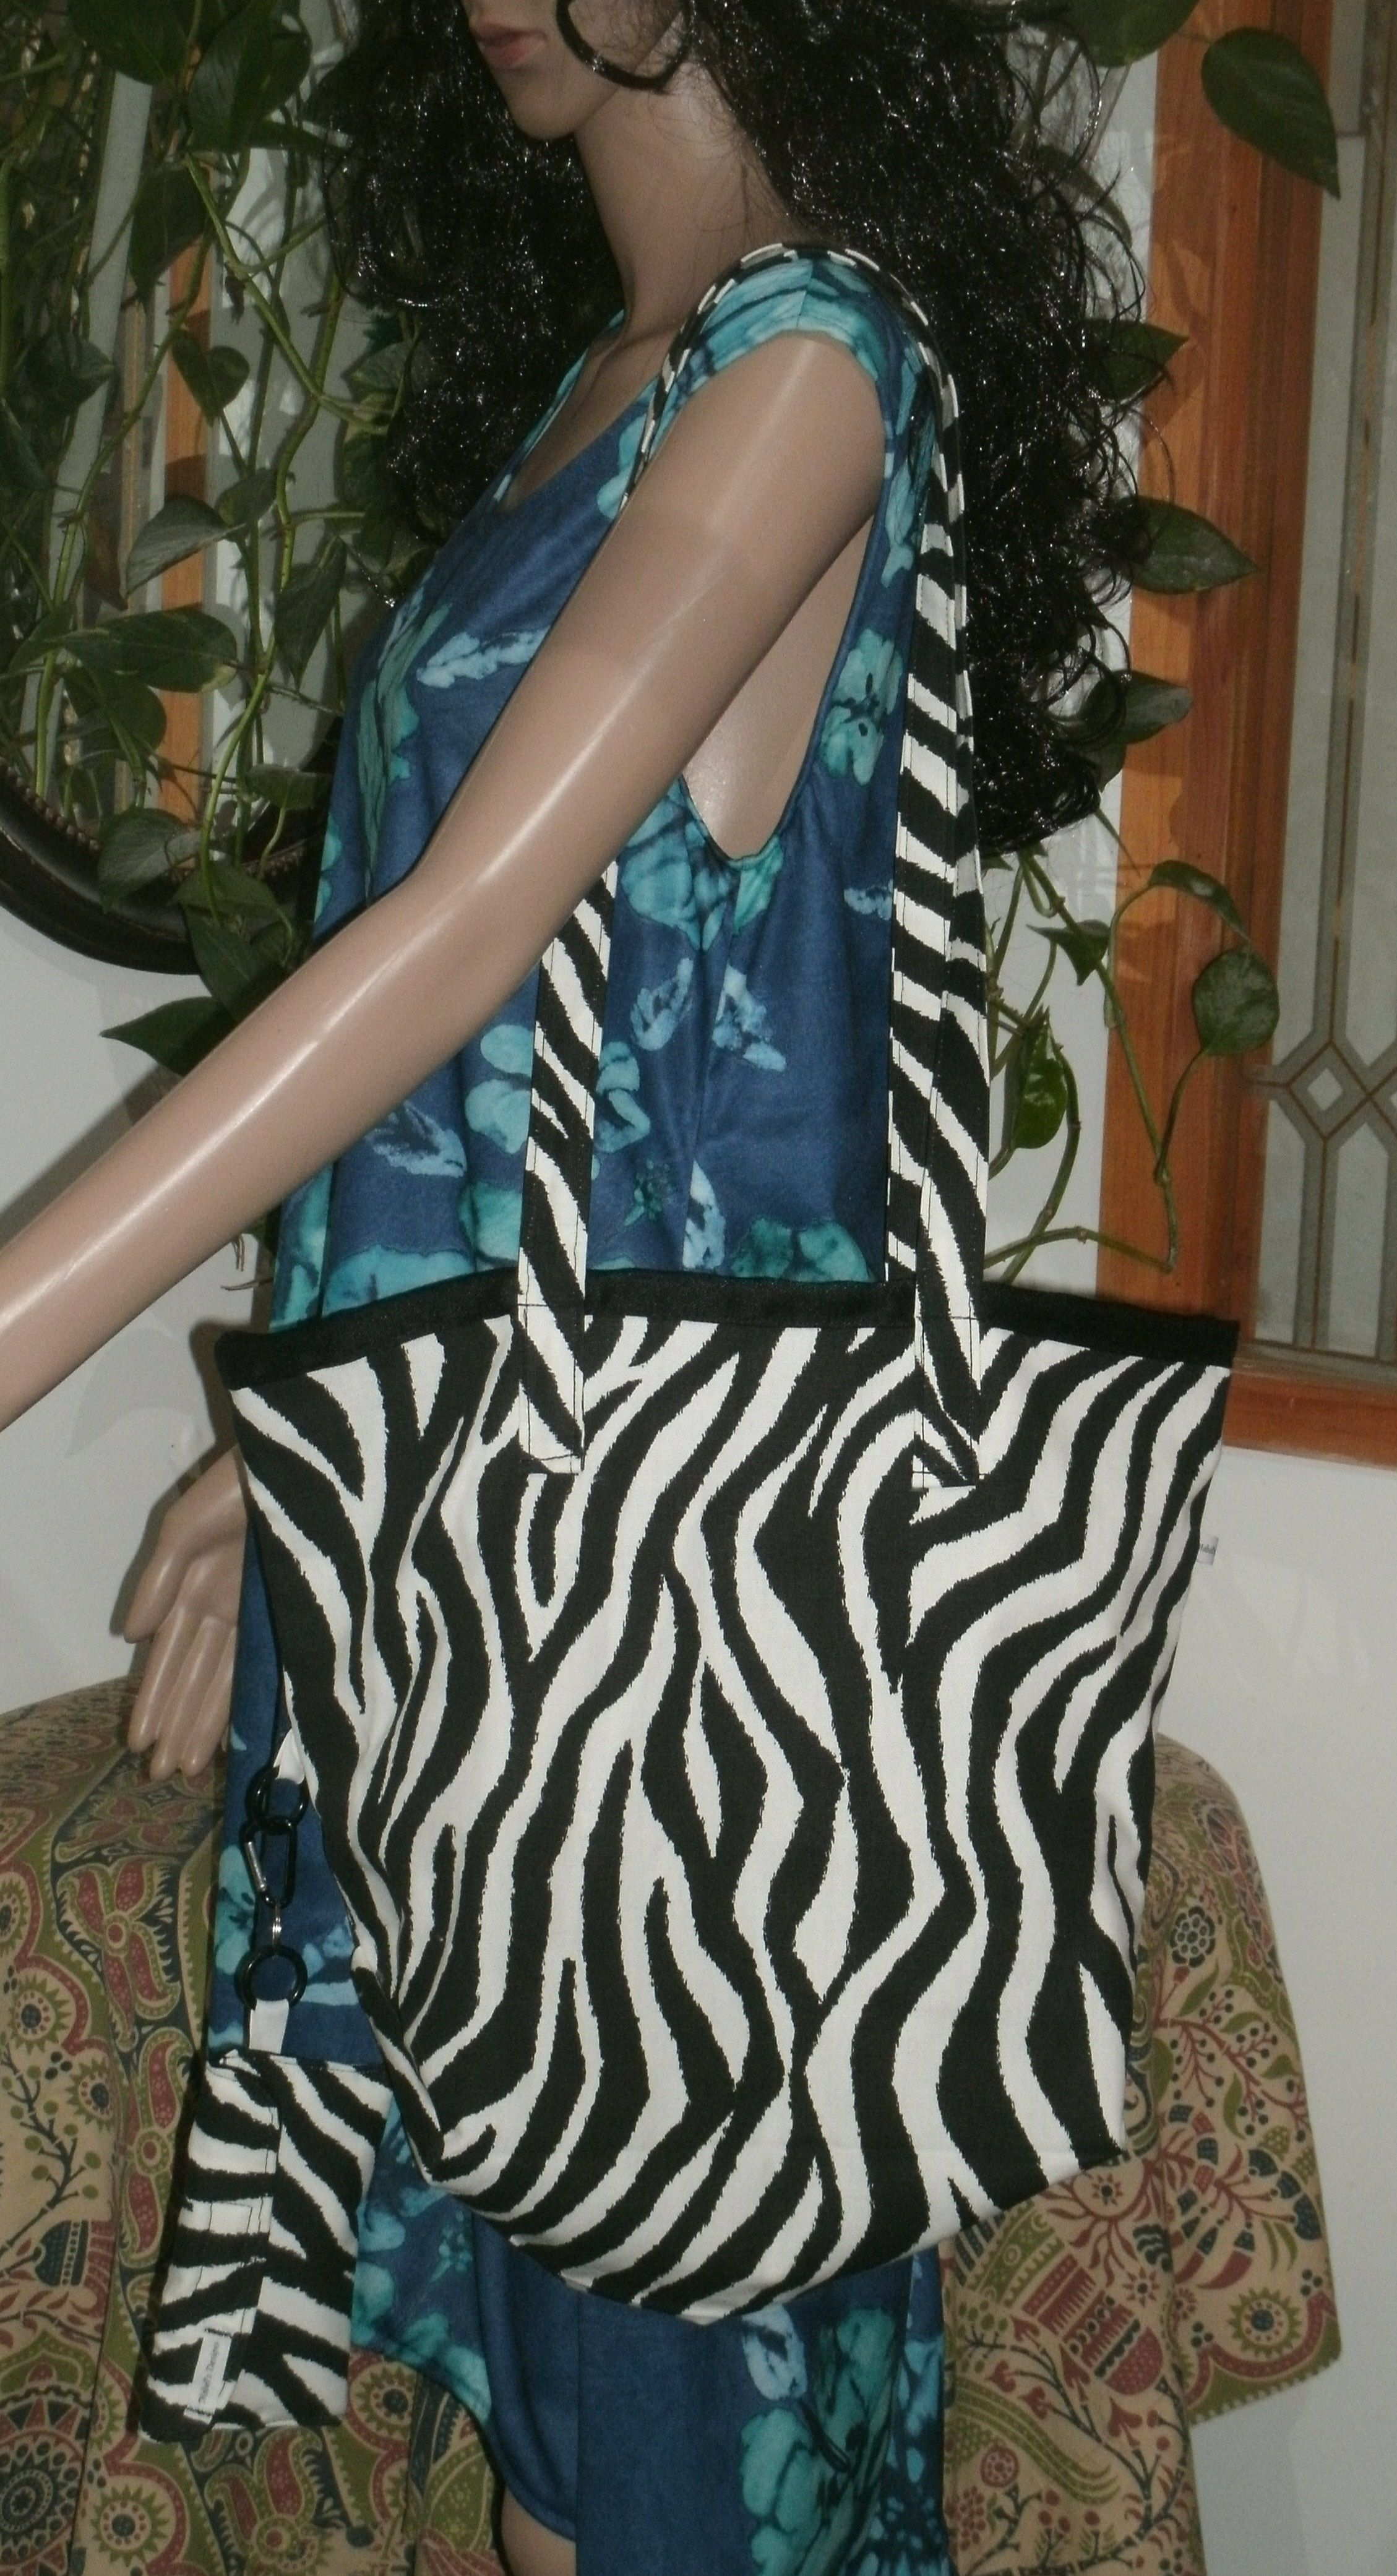 Striped upholstery fabric tote bag hand made new for the beach or shopping